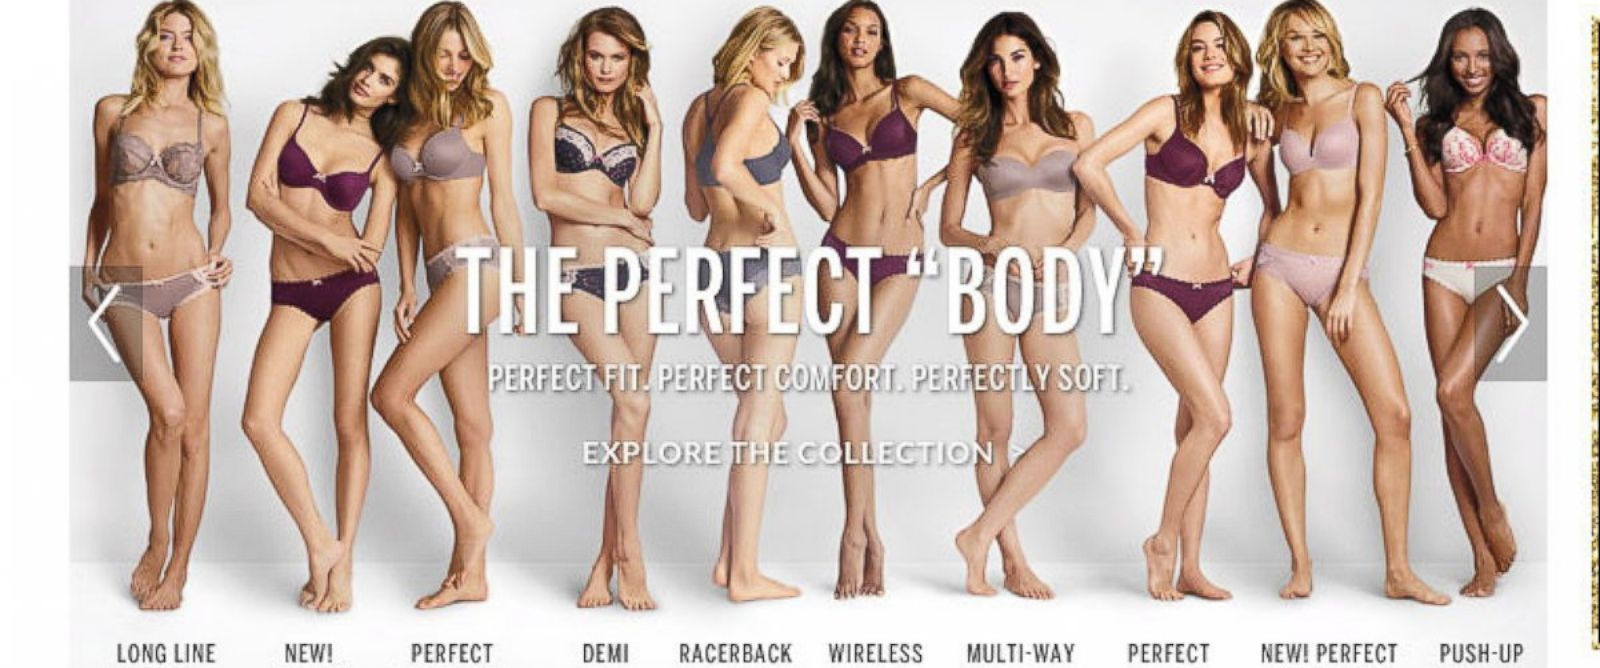 PHOTO: The Perfect Body by Victorias Secret.